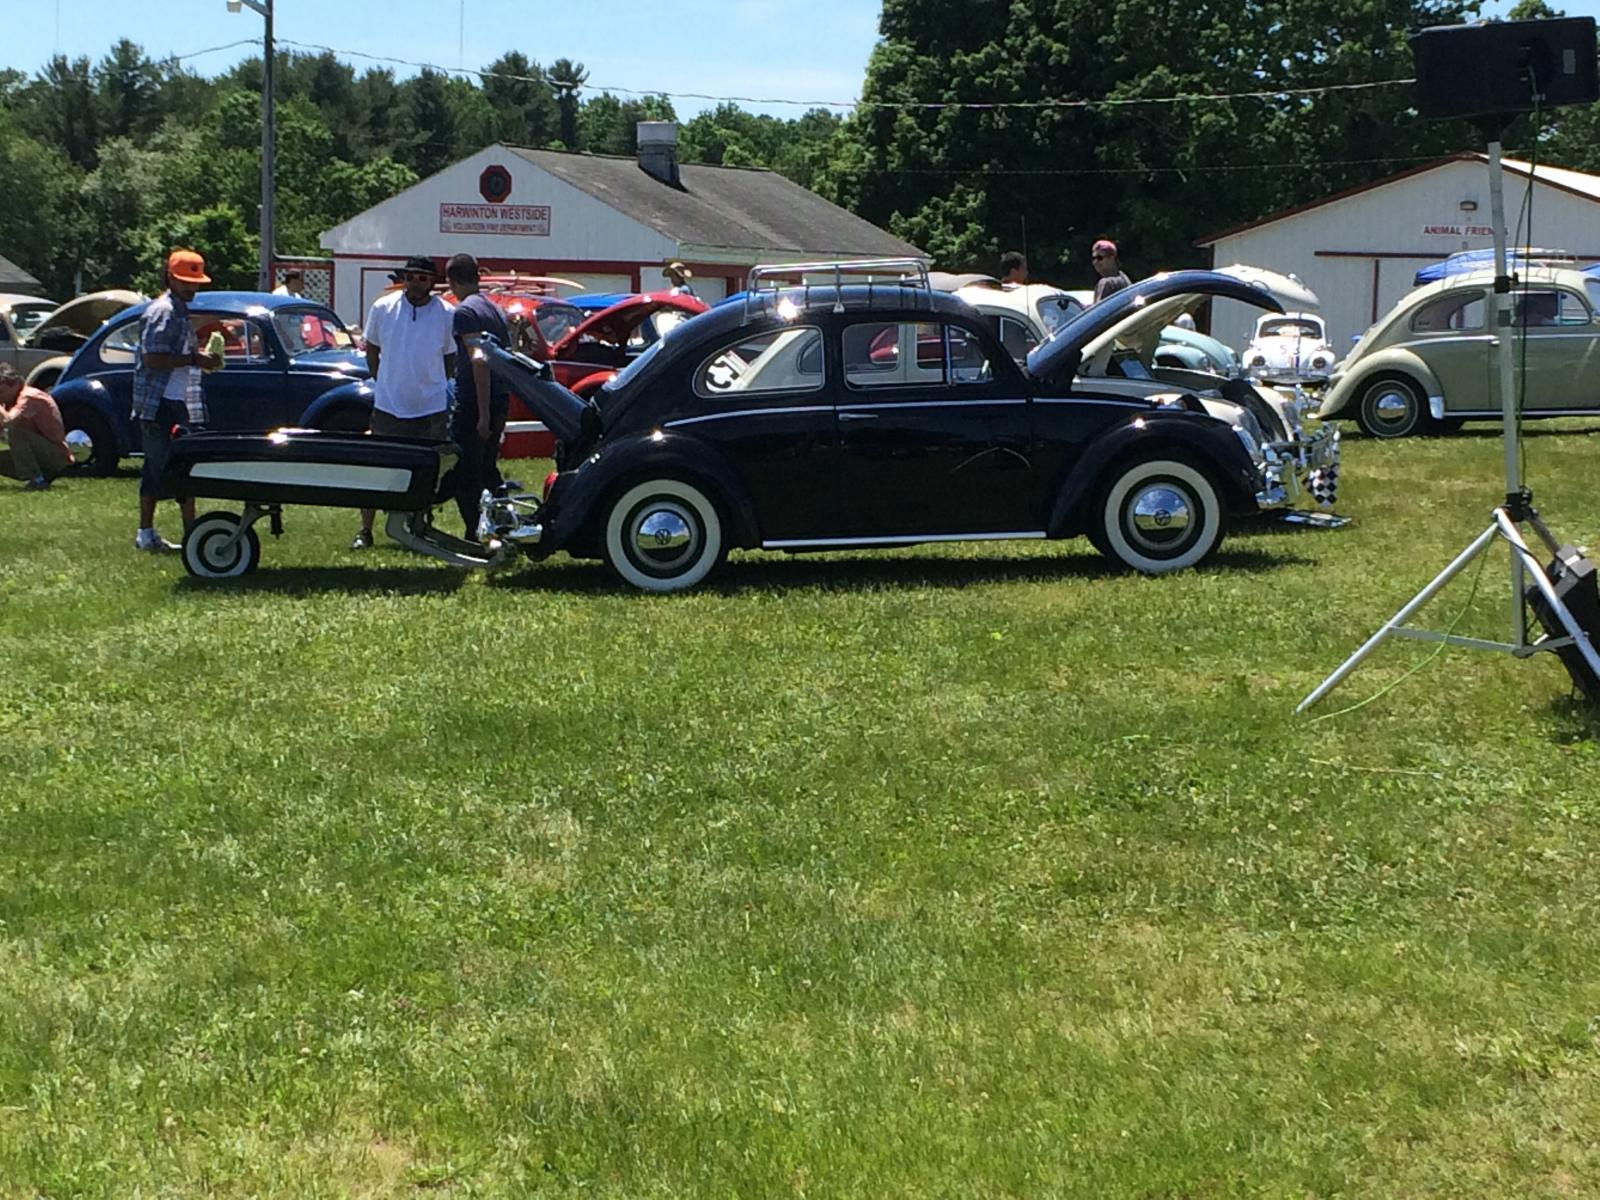 64 bug with Allstate trailer